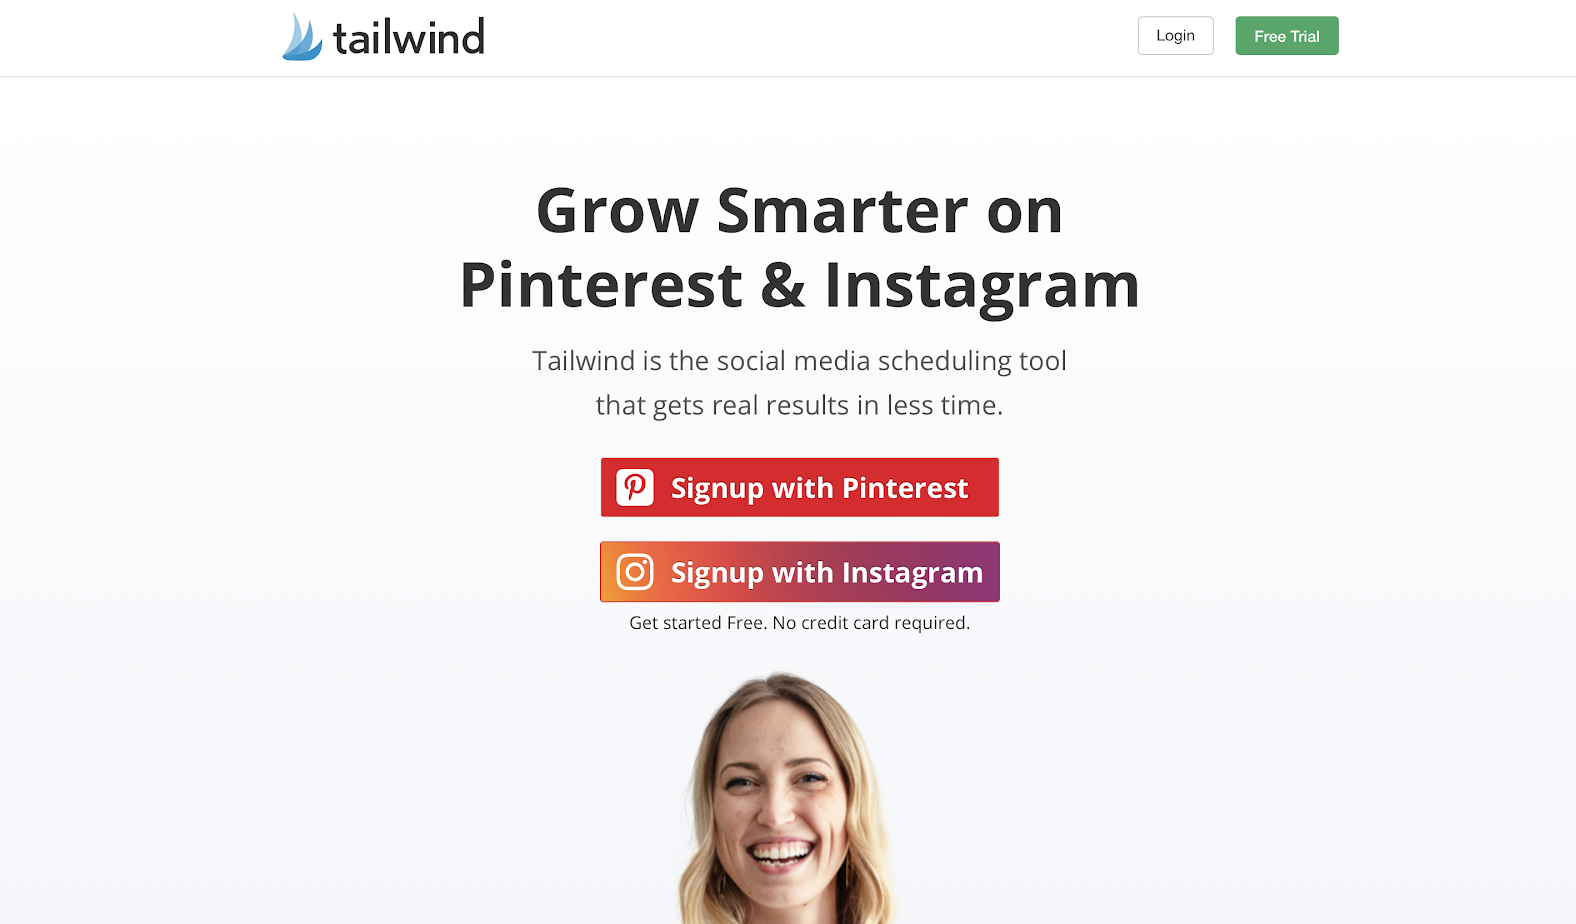 10 Of The Best Social Media Management Tools To Boost Your Campaign This 2020 tailwind